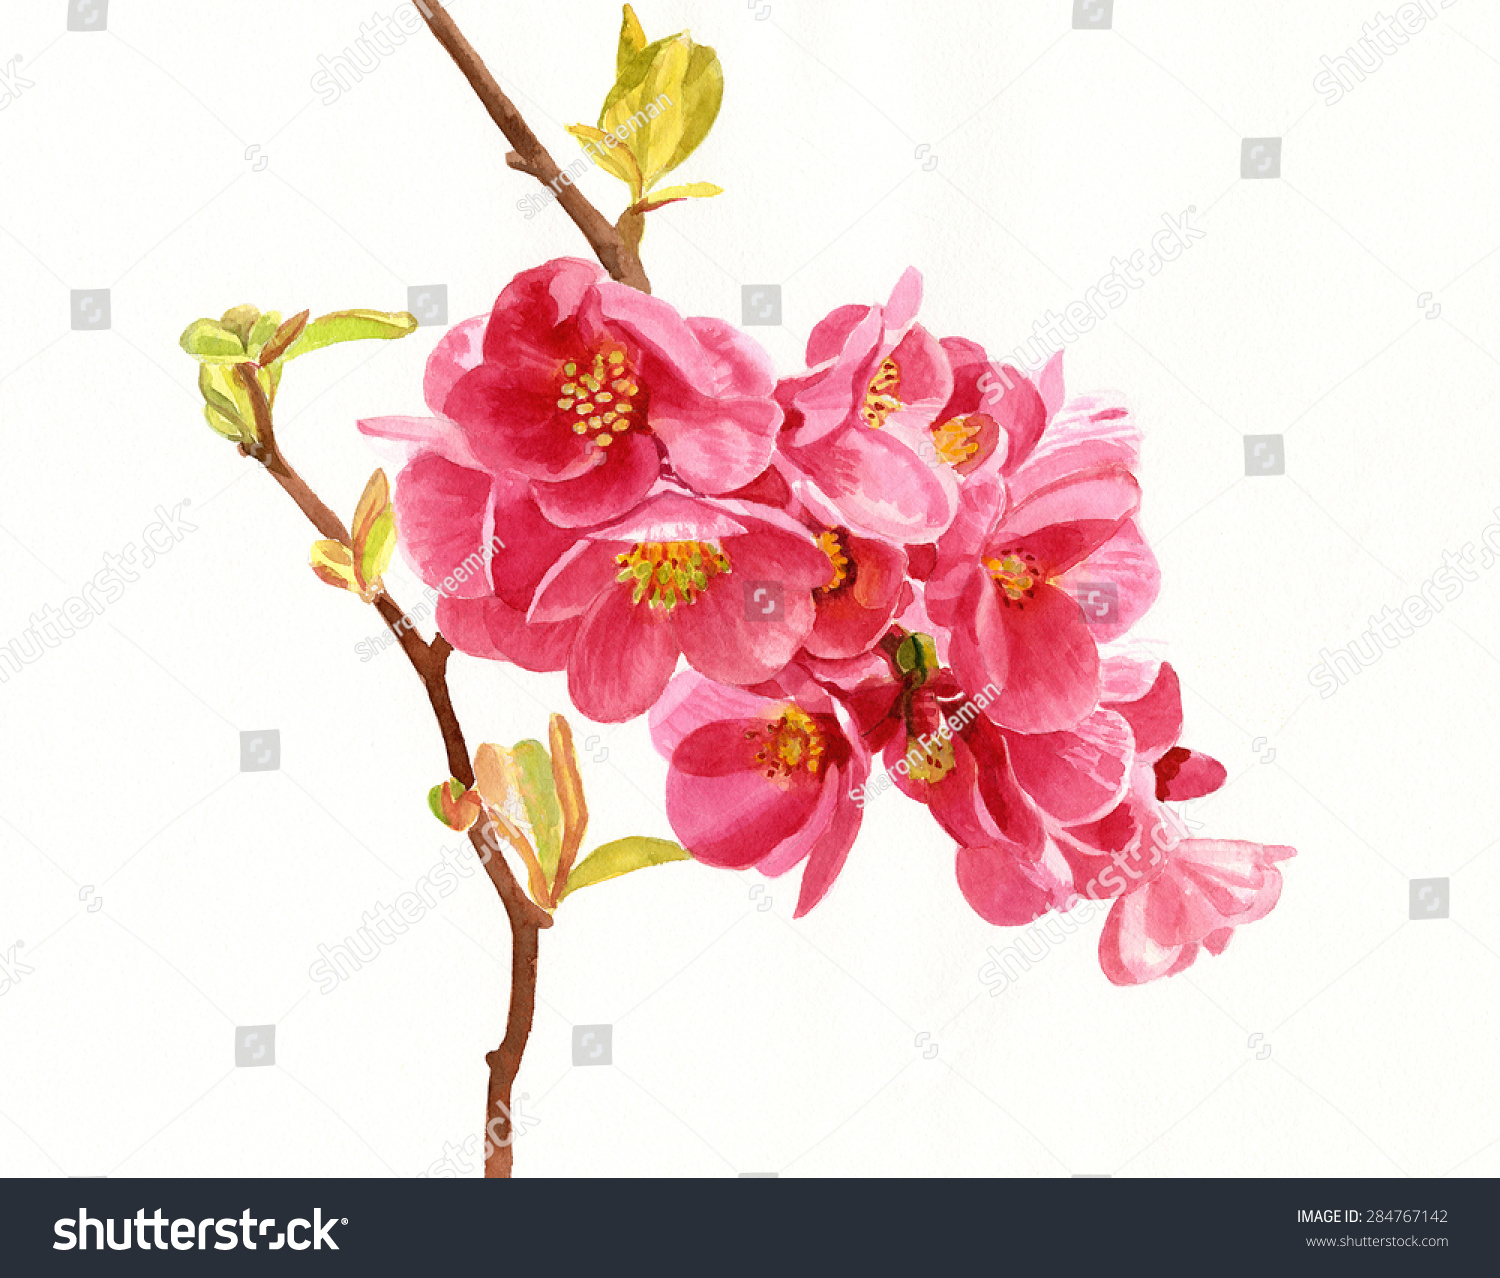 Salmon Colored Flowering Quince Blossoms Watercolor Stock ...